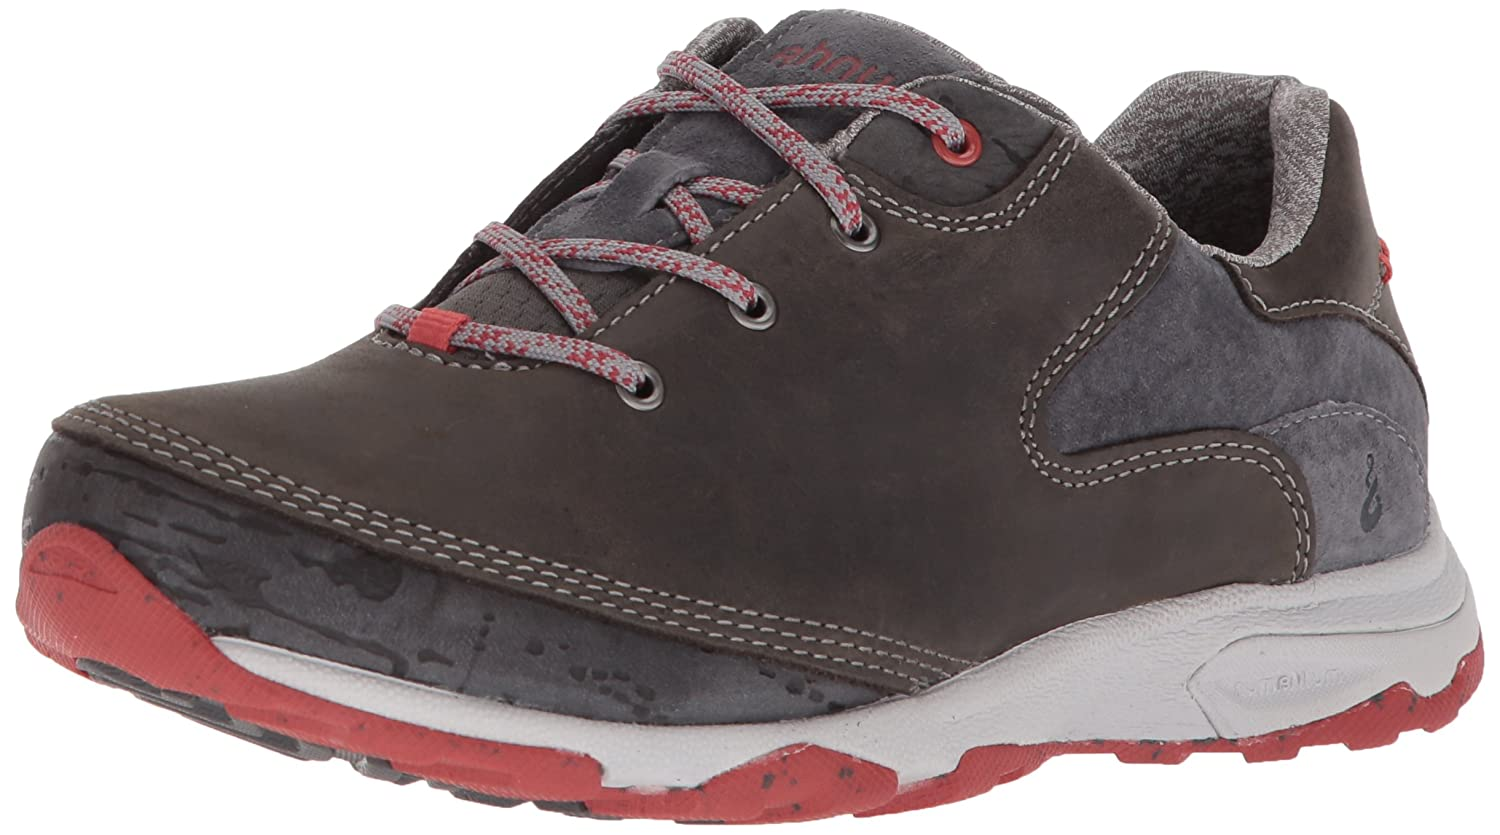 Ahnu Women's W Sugar Venture Lace Hiking Boot B071JPBQFM 7.5 B(M) US|Twilight